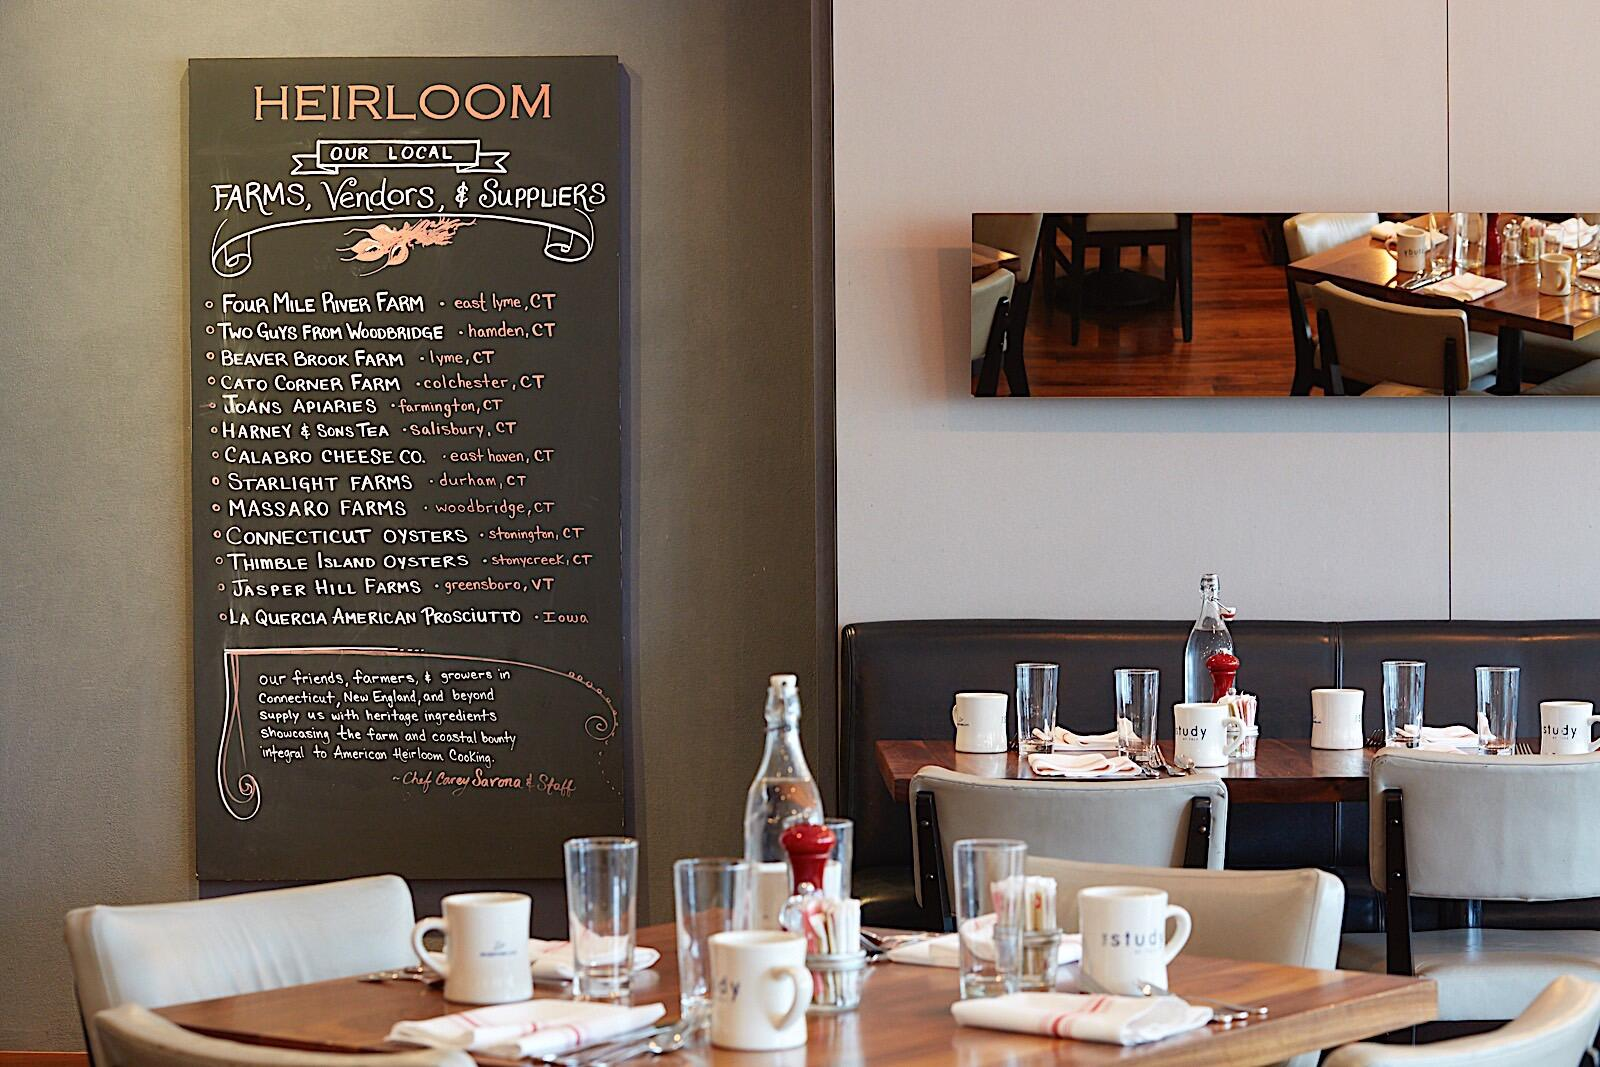 Heirloom Dining Room with Board